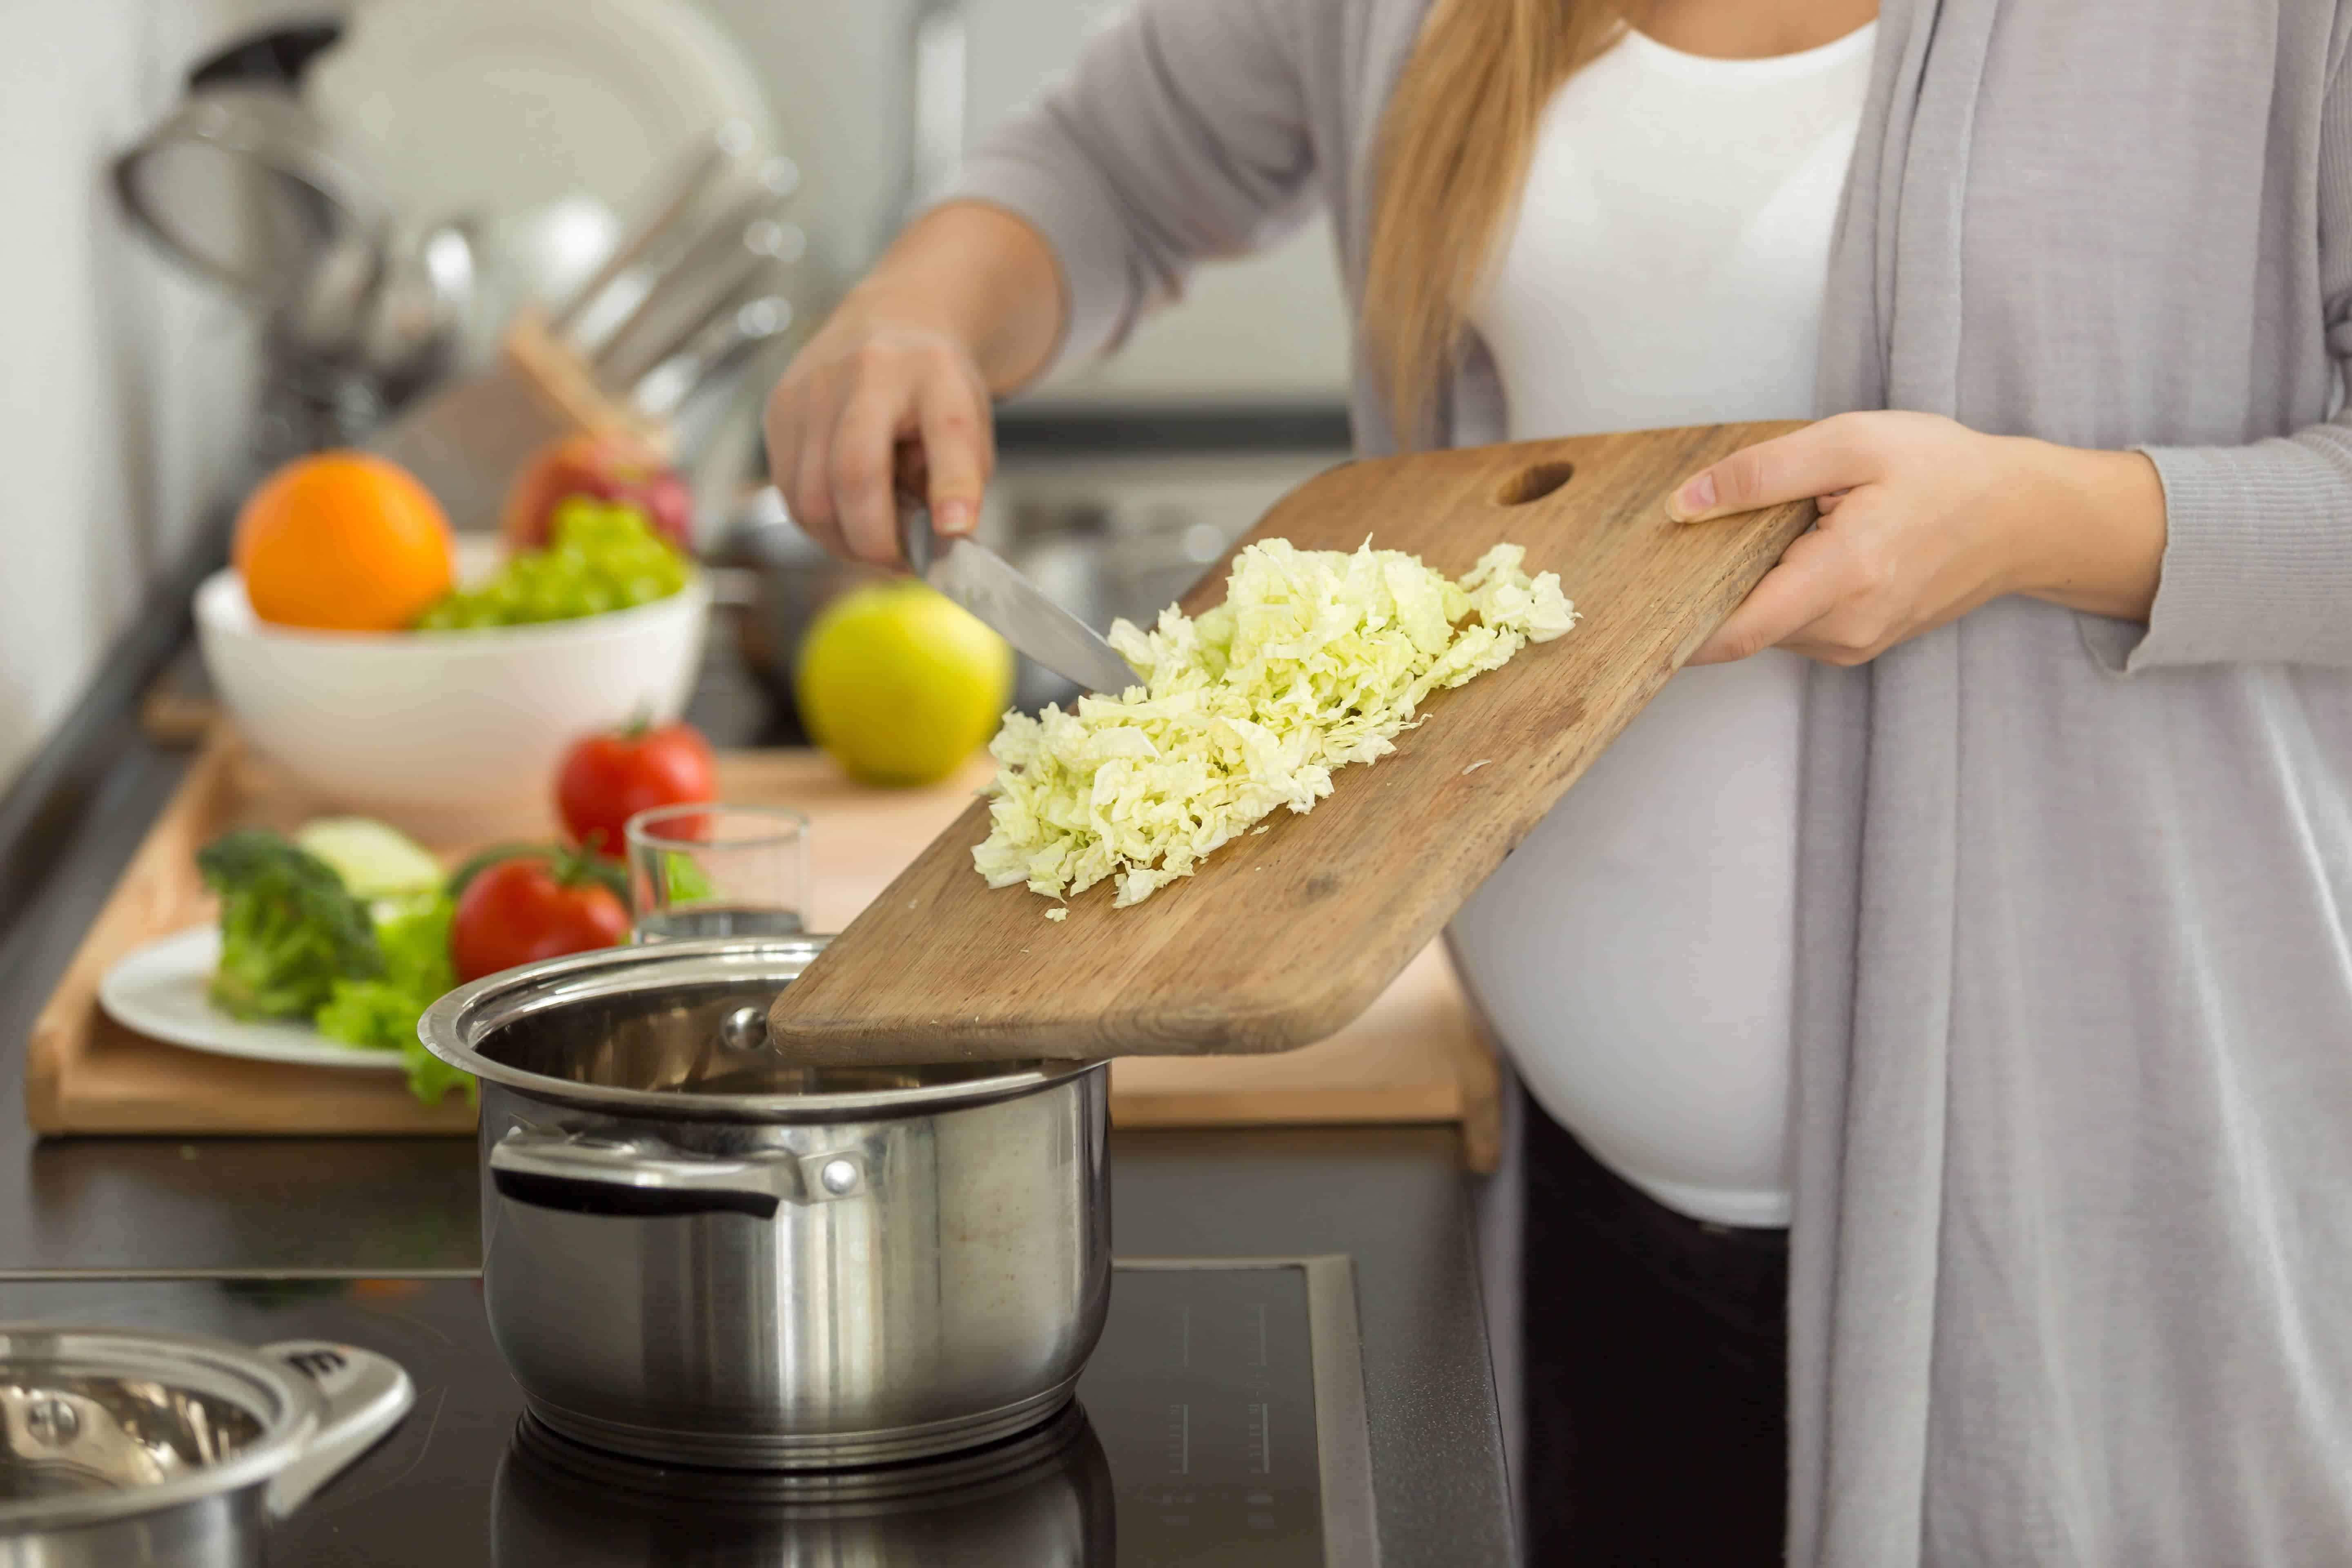 Free meals for new moms